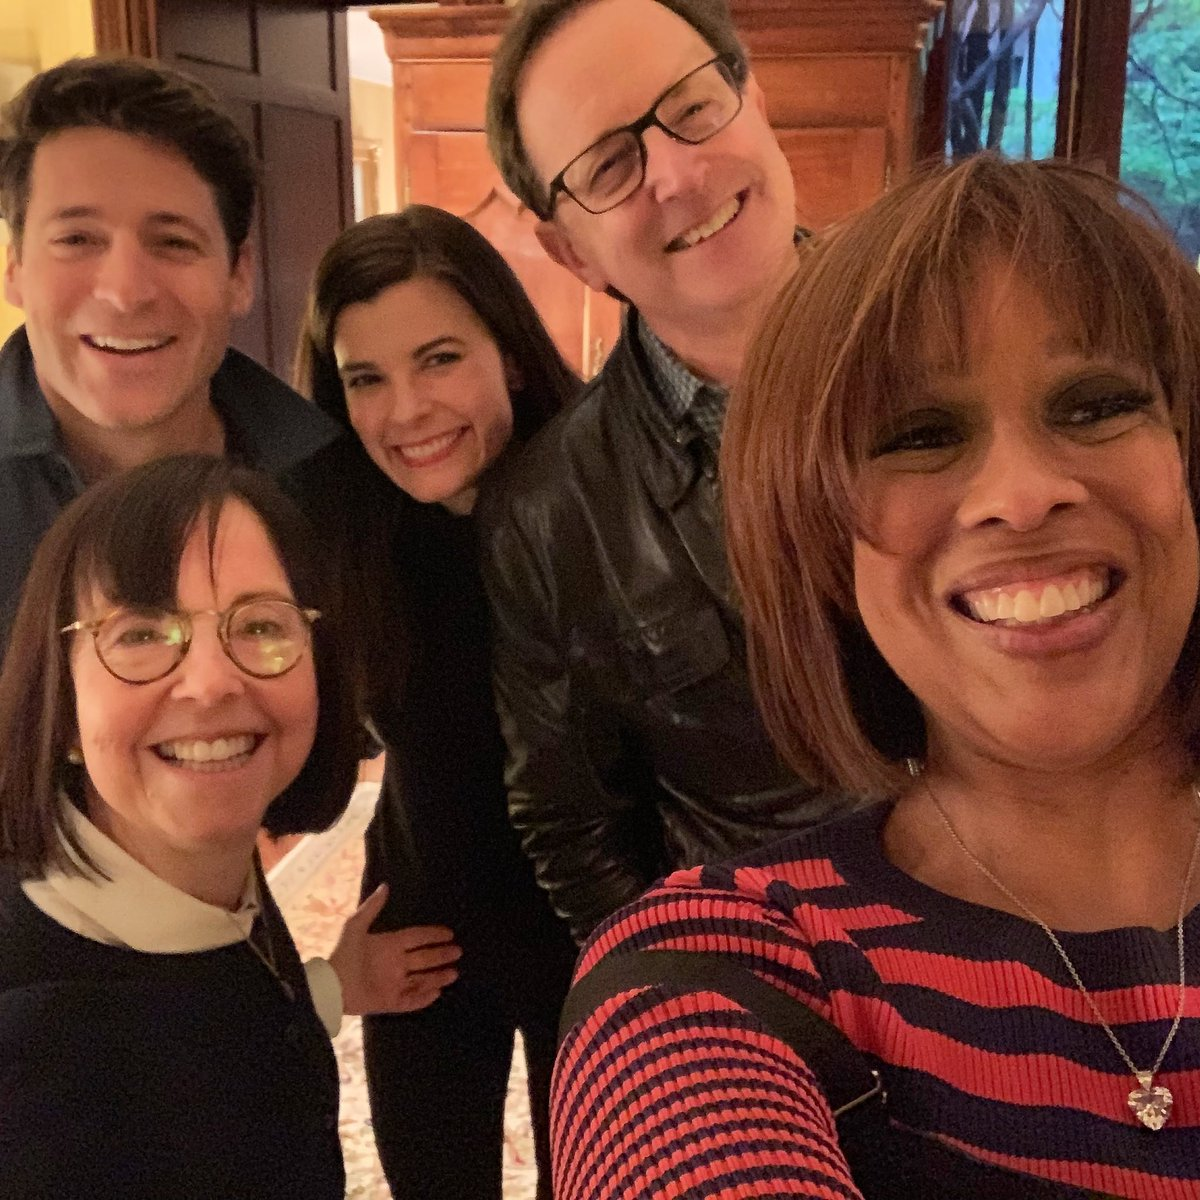 Happy Anniversary to Us! - a year ago w/@GayleKing, @tonydokoupil, exec producer @dianapmiller & our fearless leader @szirinsky at the first meeting of the new @CBSThisMorning team on the eve of our launch. We went on the air one year ago today! https://t.co/jUbwp2NPIX